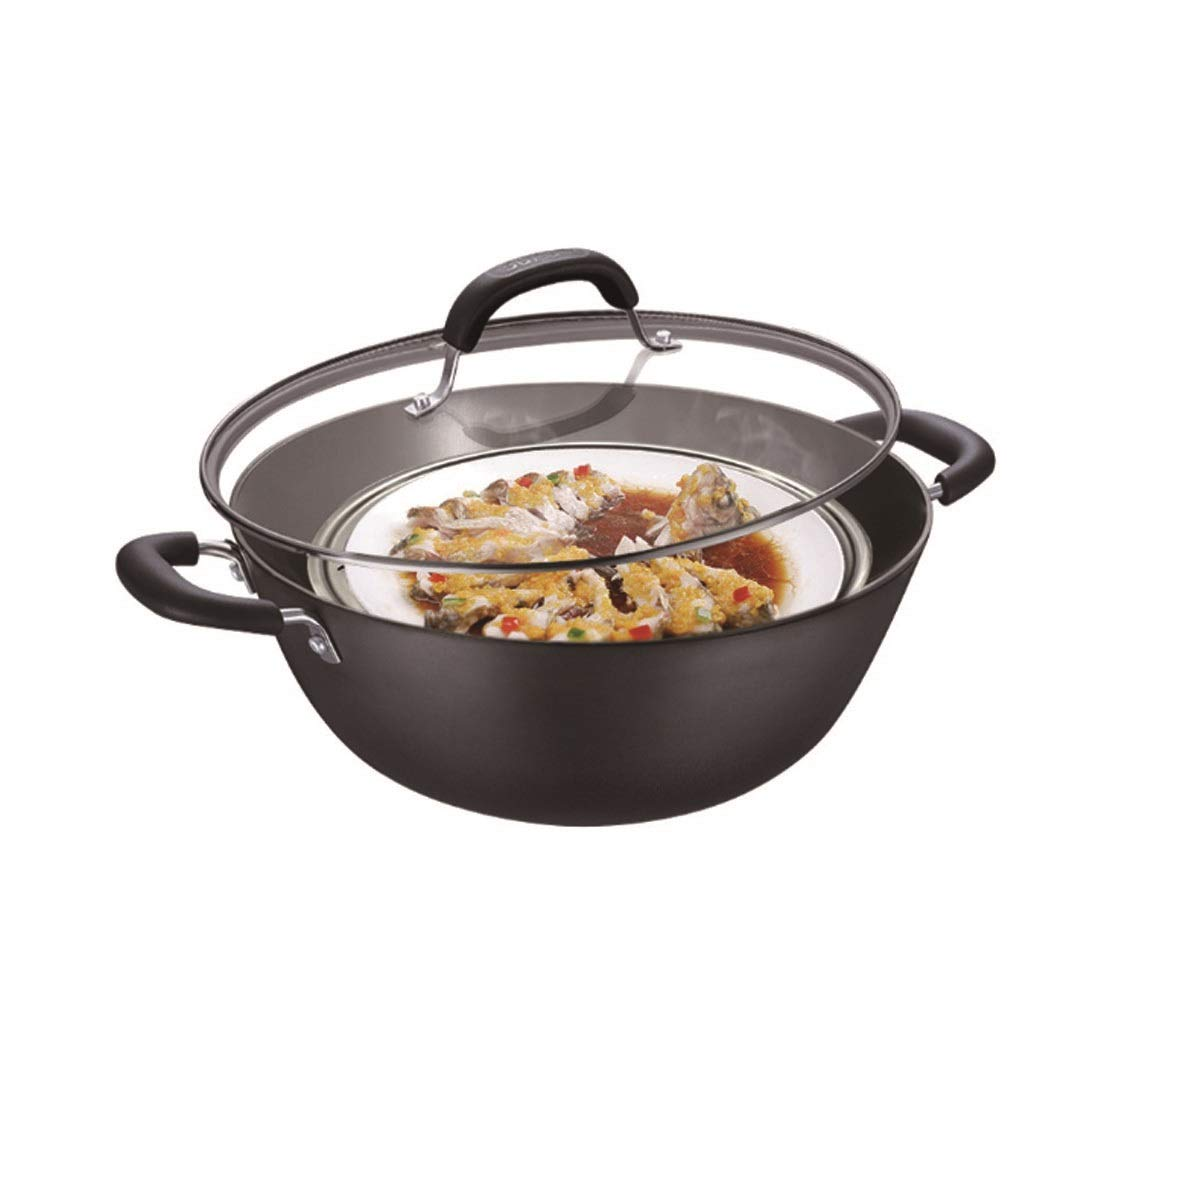 Hengtongtongxun Old-Fashioned Binaural Wok, Large-Size Cast Iron Pan, Healthy Deep Wok, Gas Stove Cooker Universal Non-Stick Pan, Strong and Sturdy (Size : 34cm)